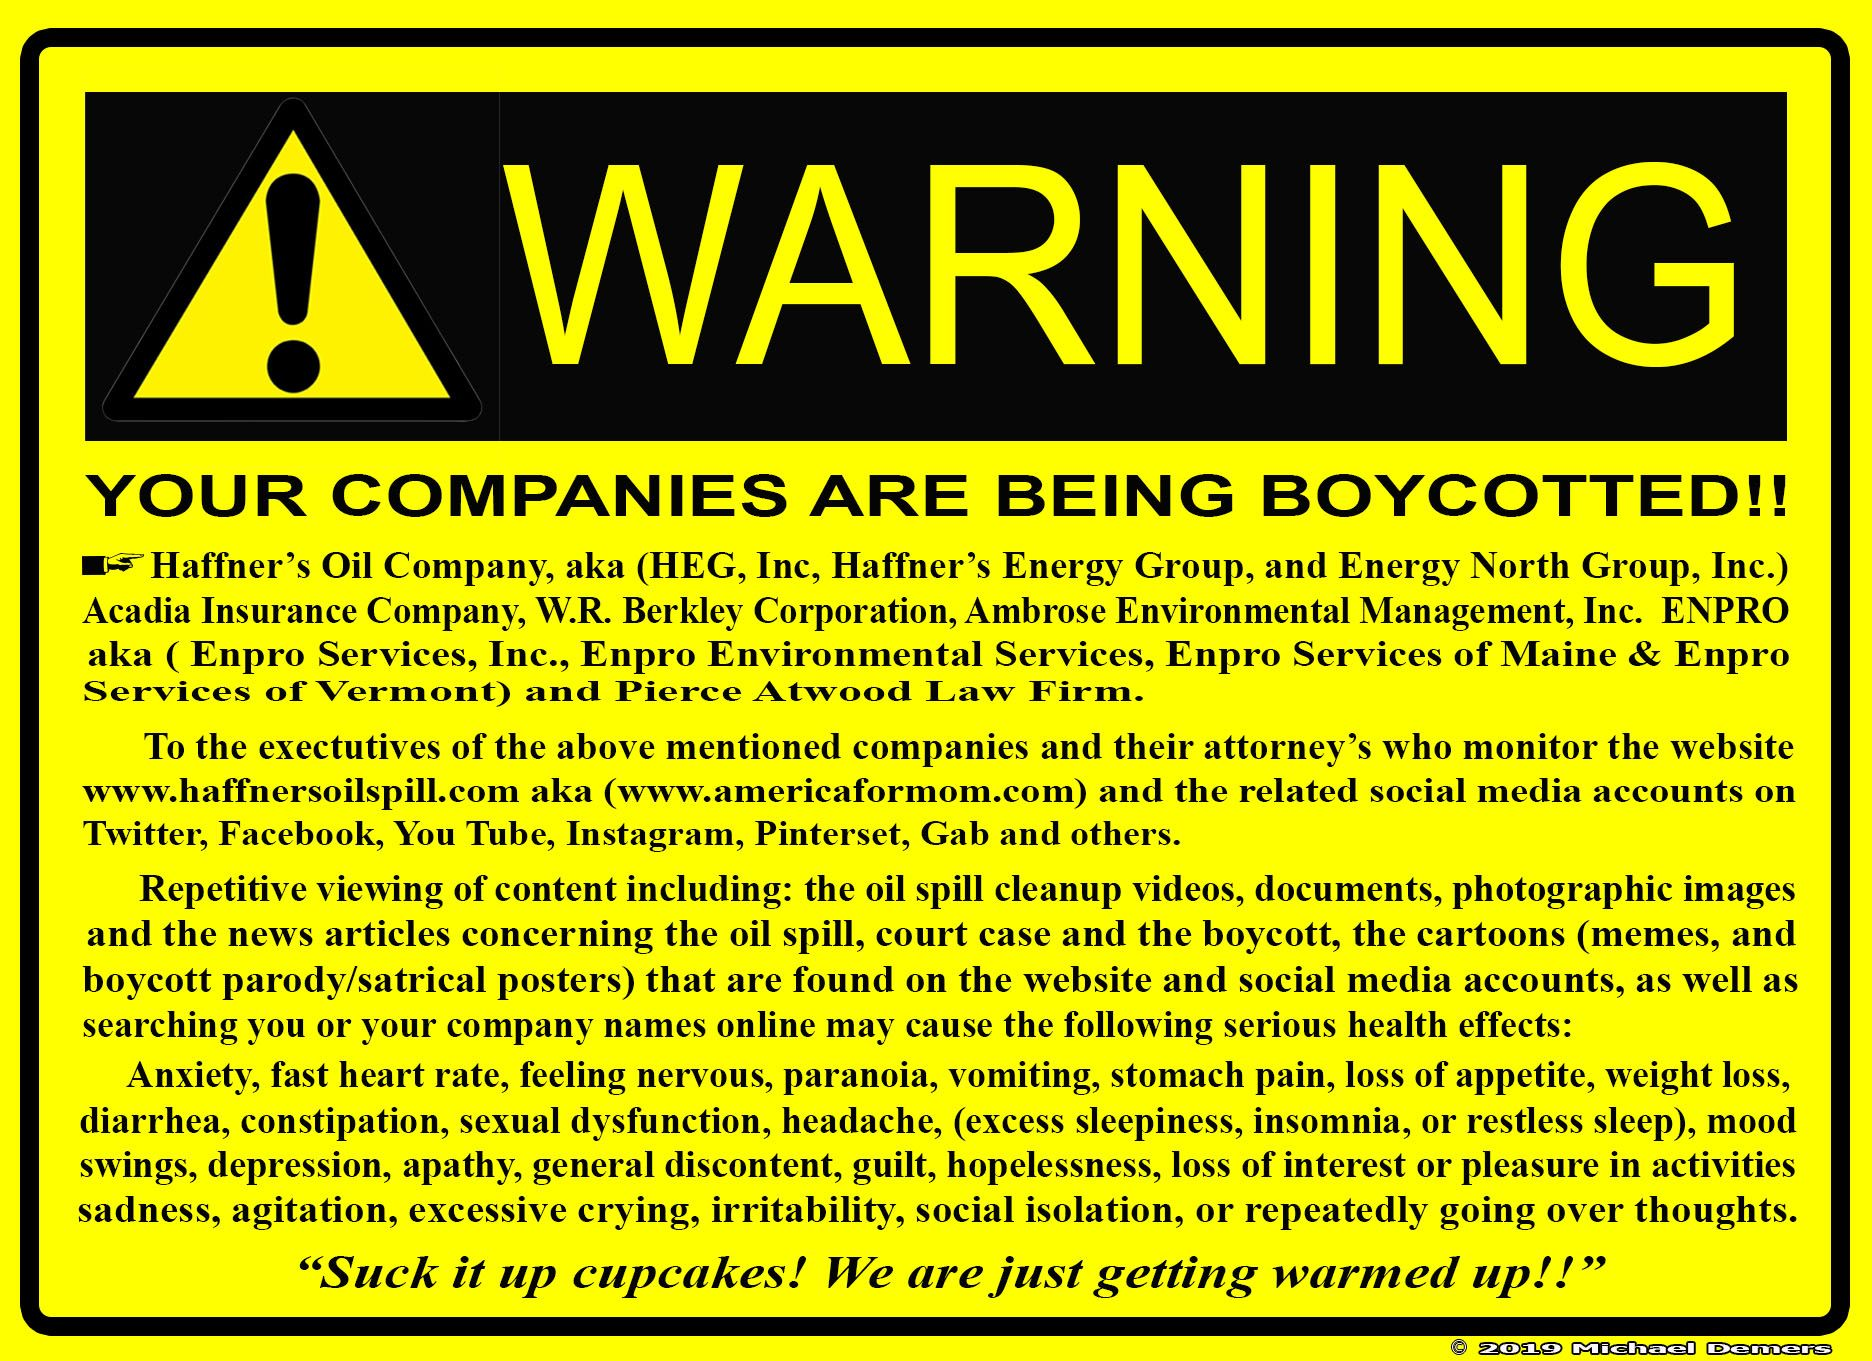 Pin by Haffner's Oil Spill on Boycott Department of